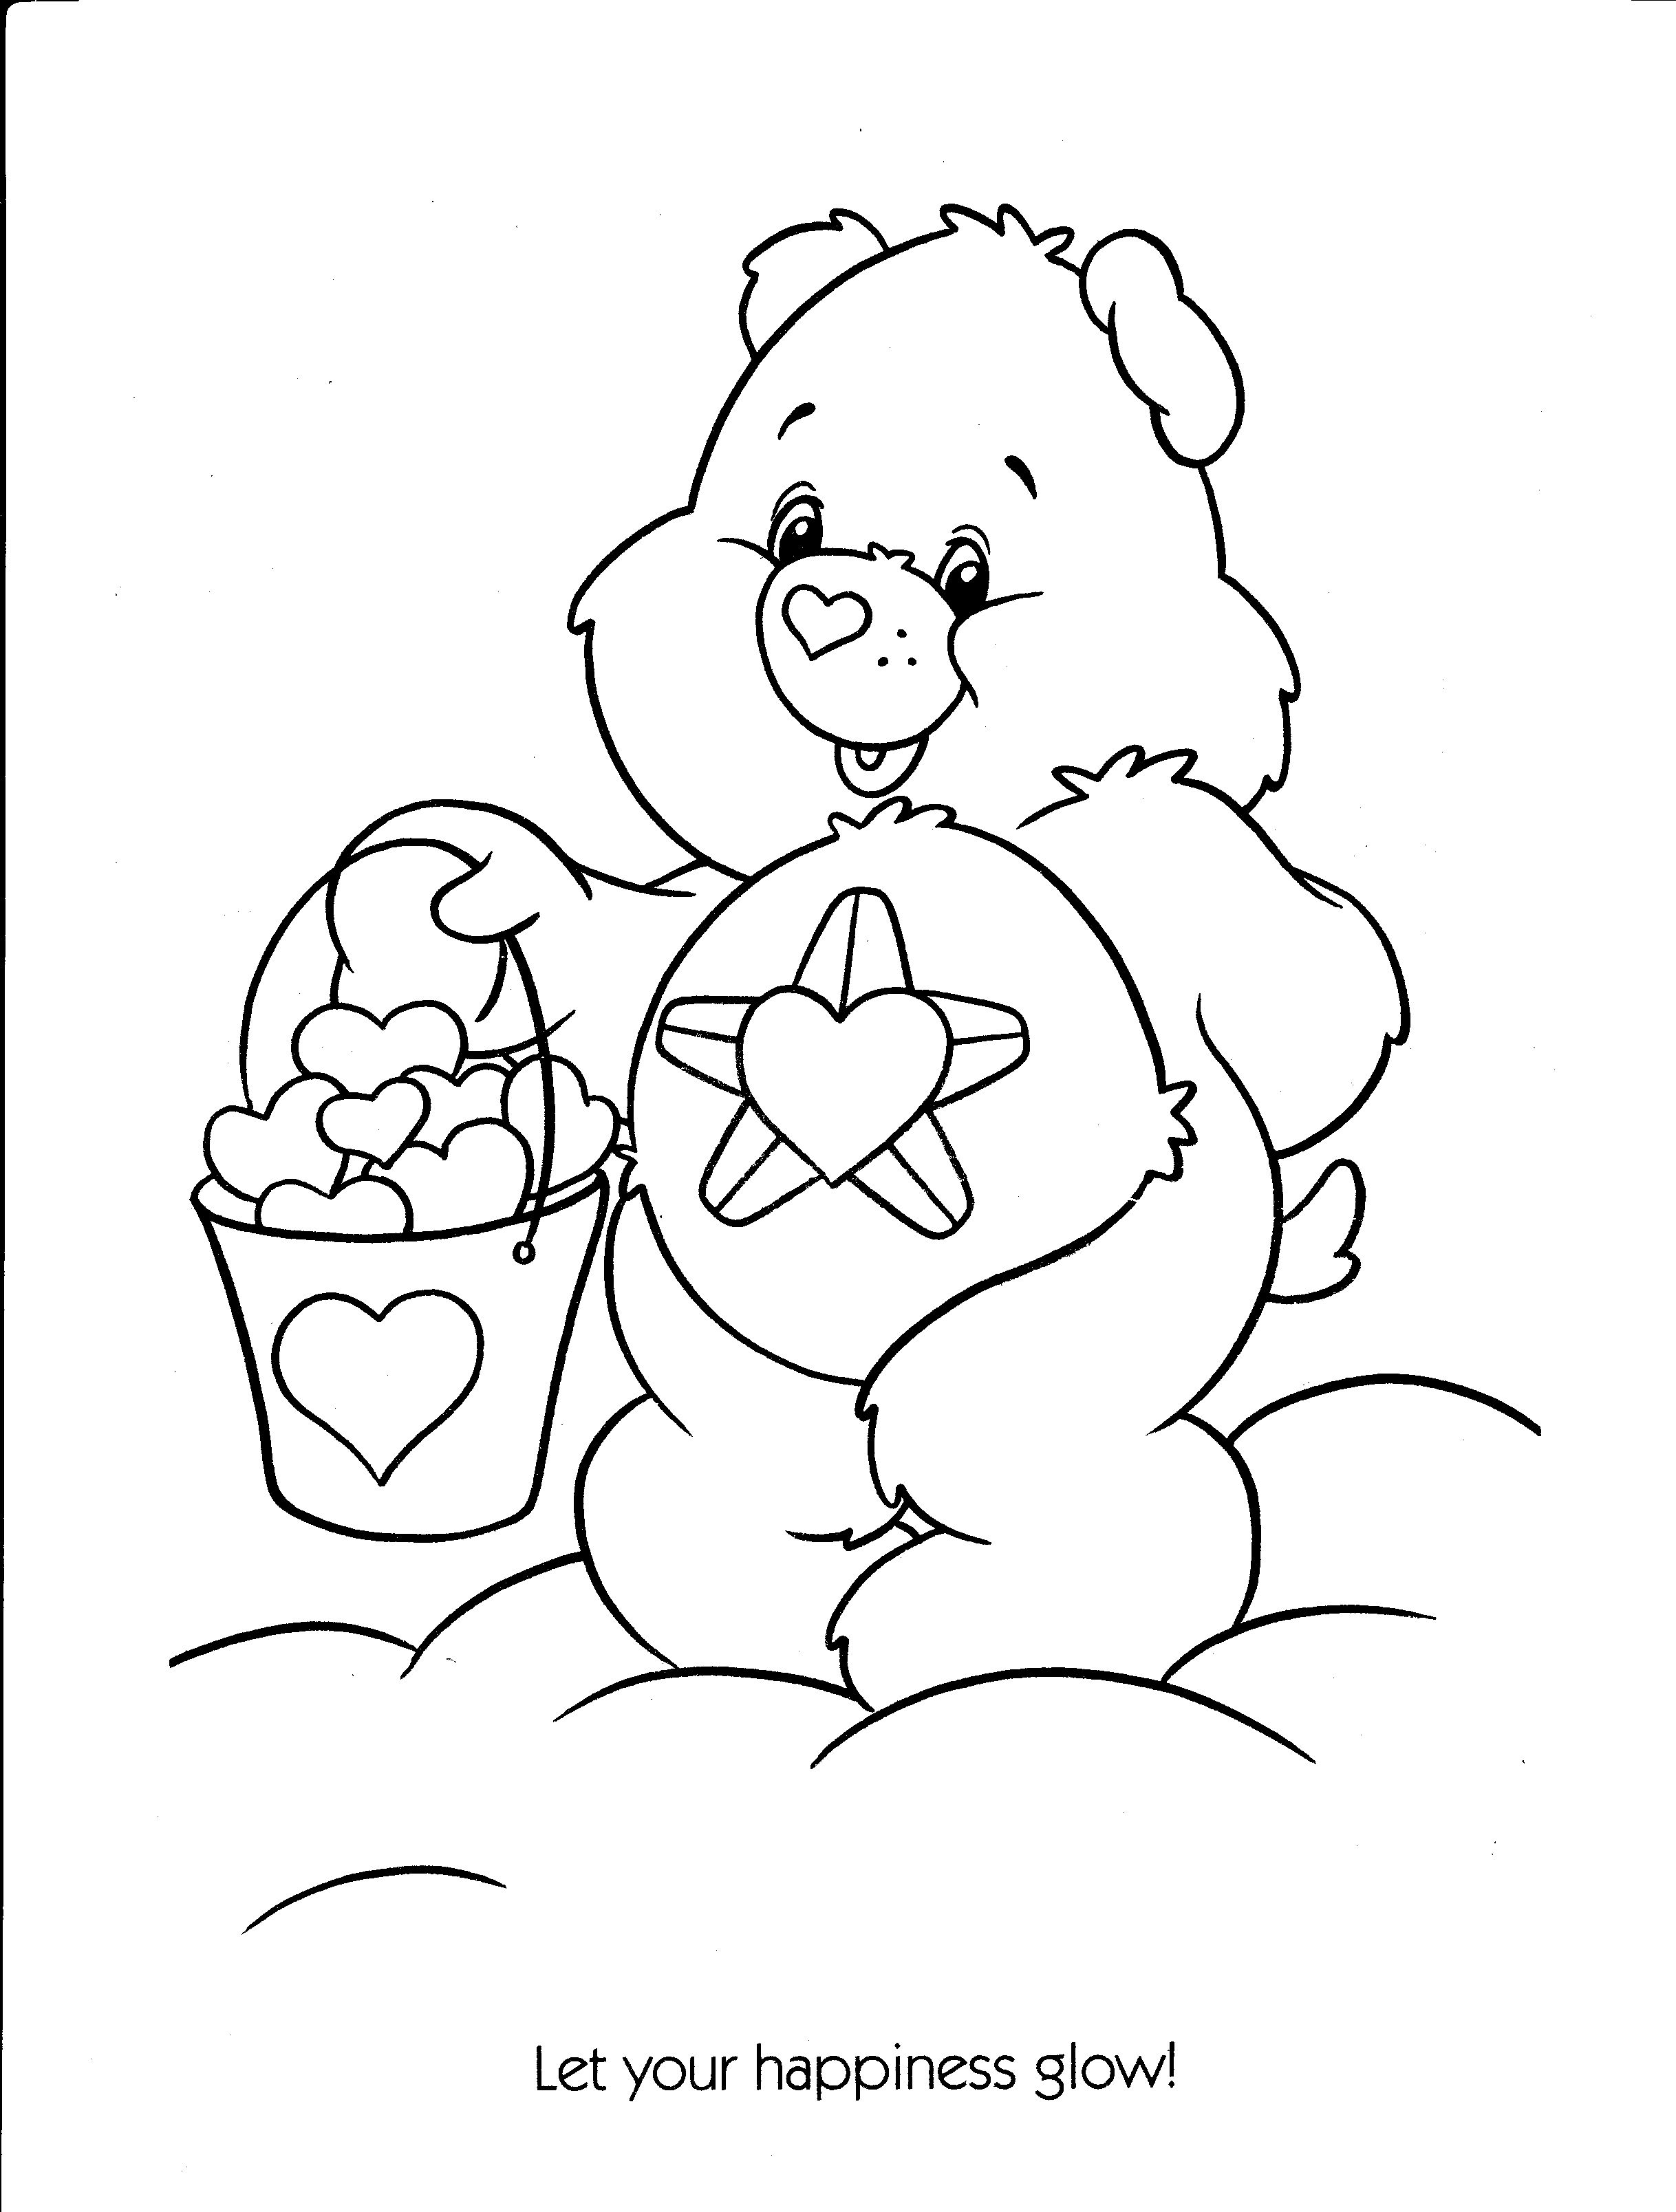 Care Bear Coloring Page Imageseldiariodelasvocesrobadas | Coloring ...